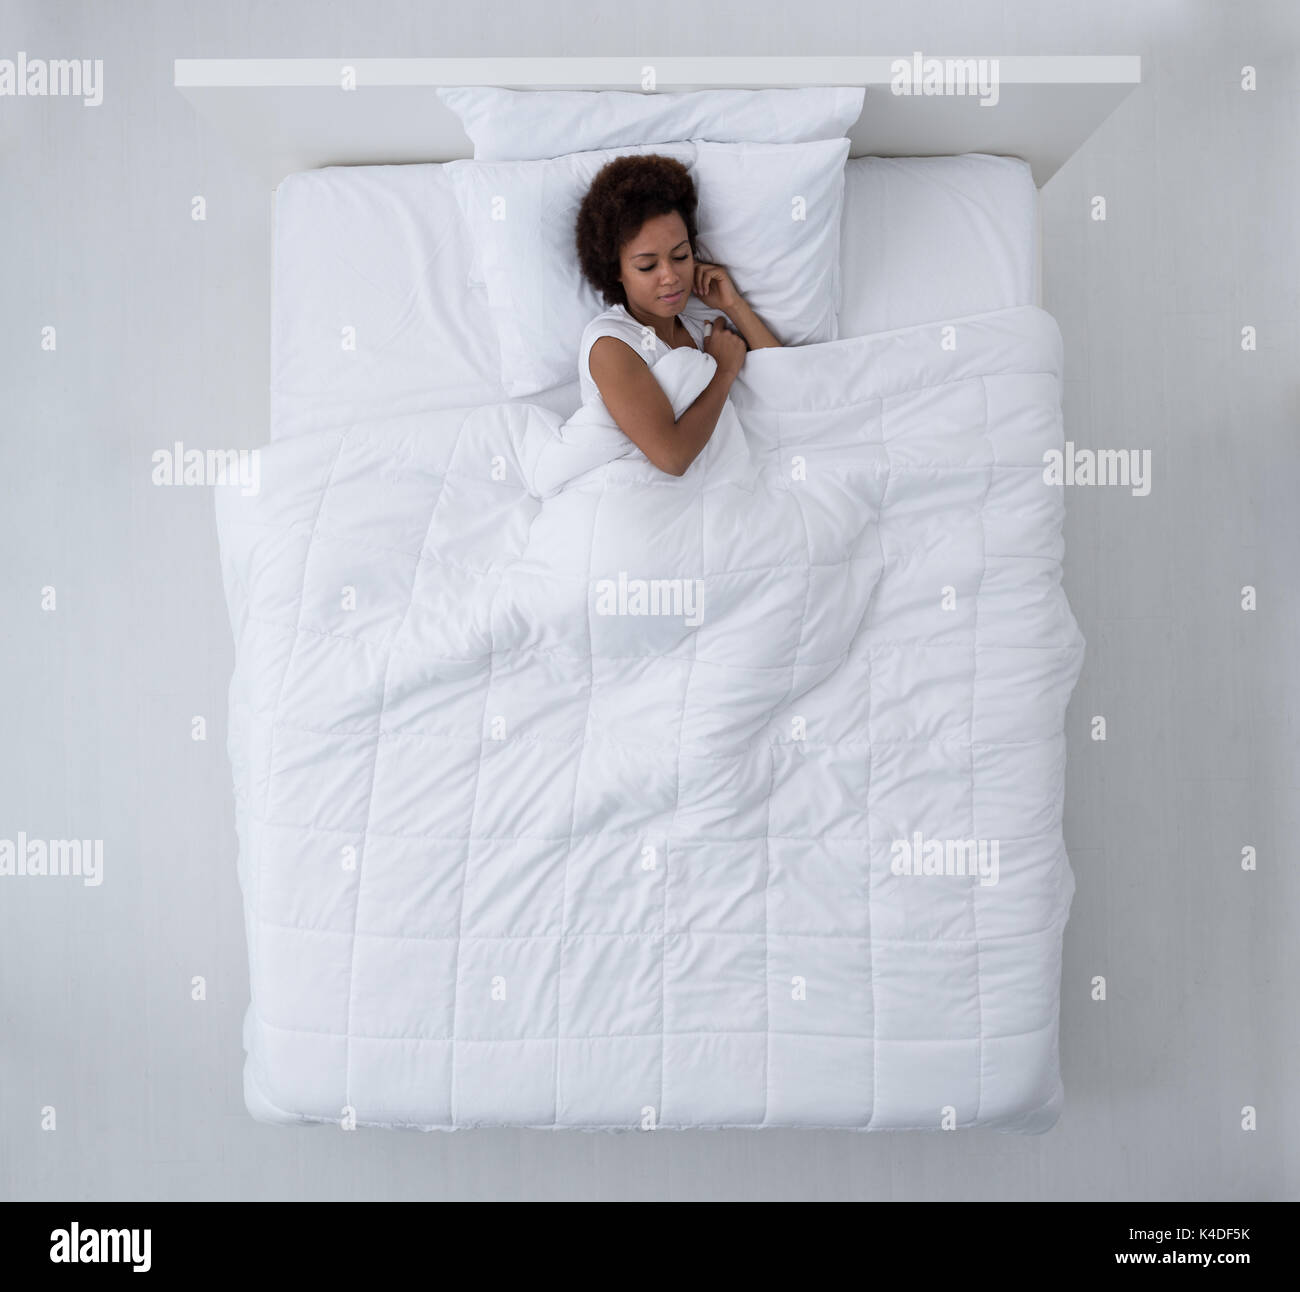 mattress top view. Beautiful African American Woman Lying In Bed And Sleeping, Top View Mattress